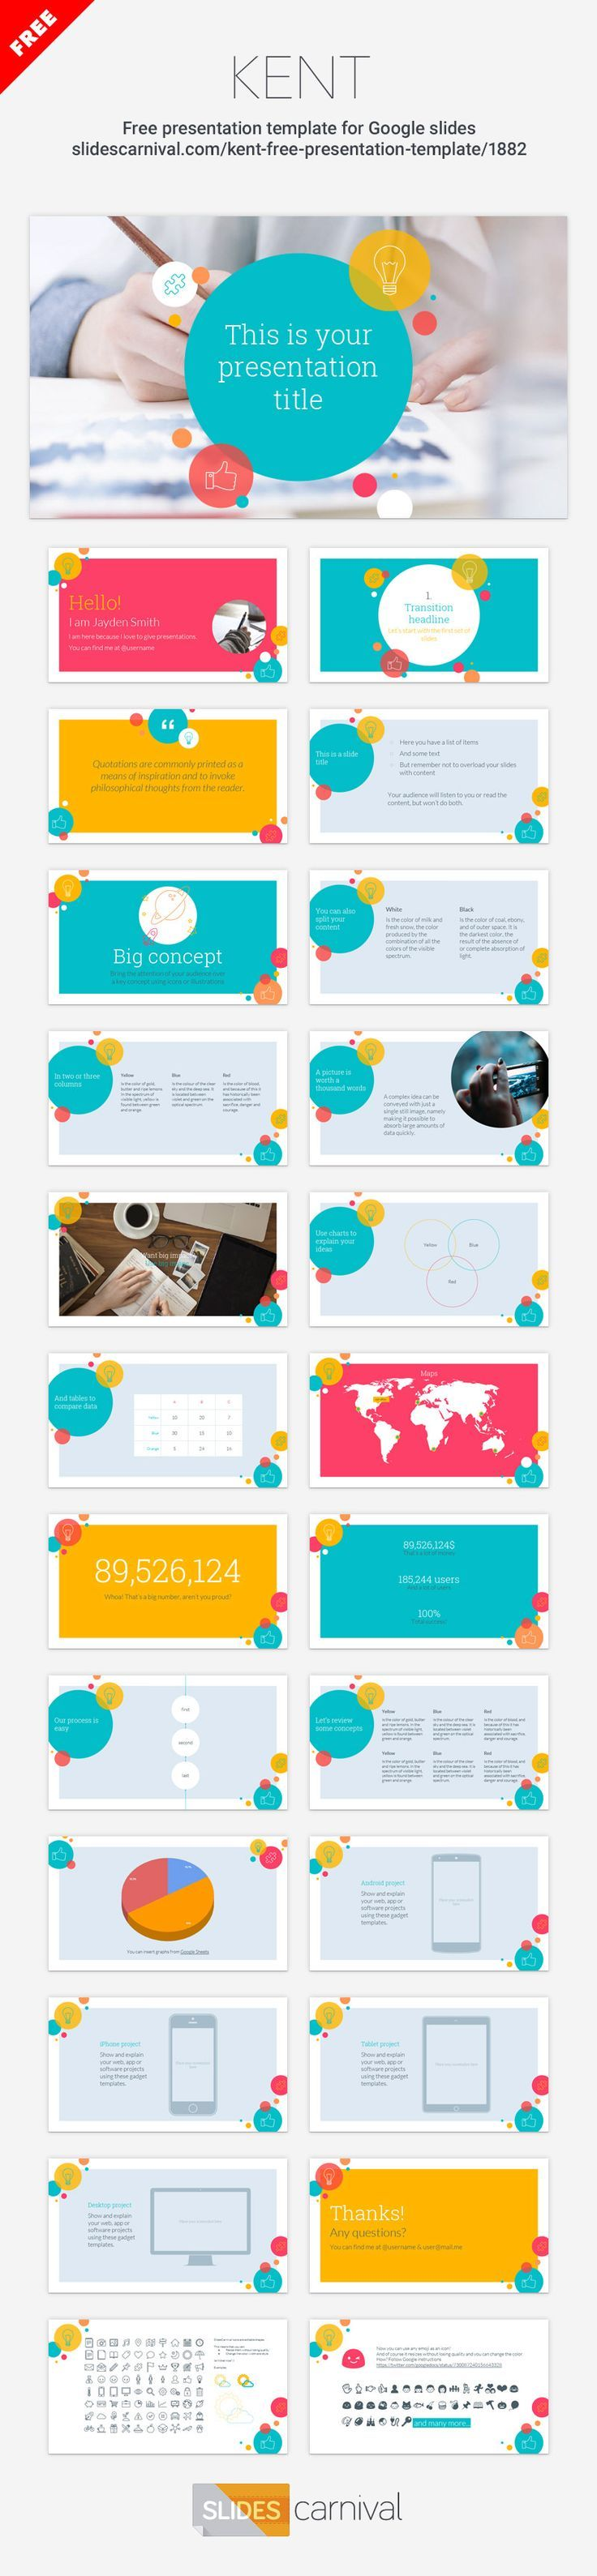 96 best free ppt template images on pinterest free ppt download free download ppt template toneelgroepblik Images